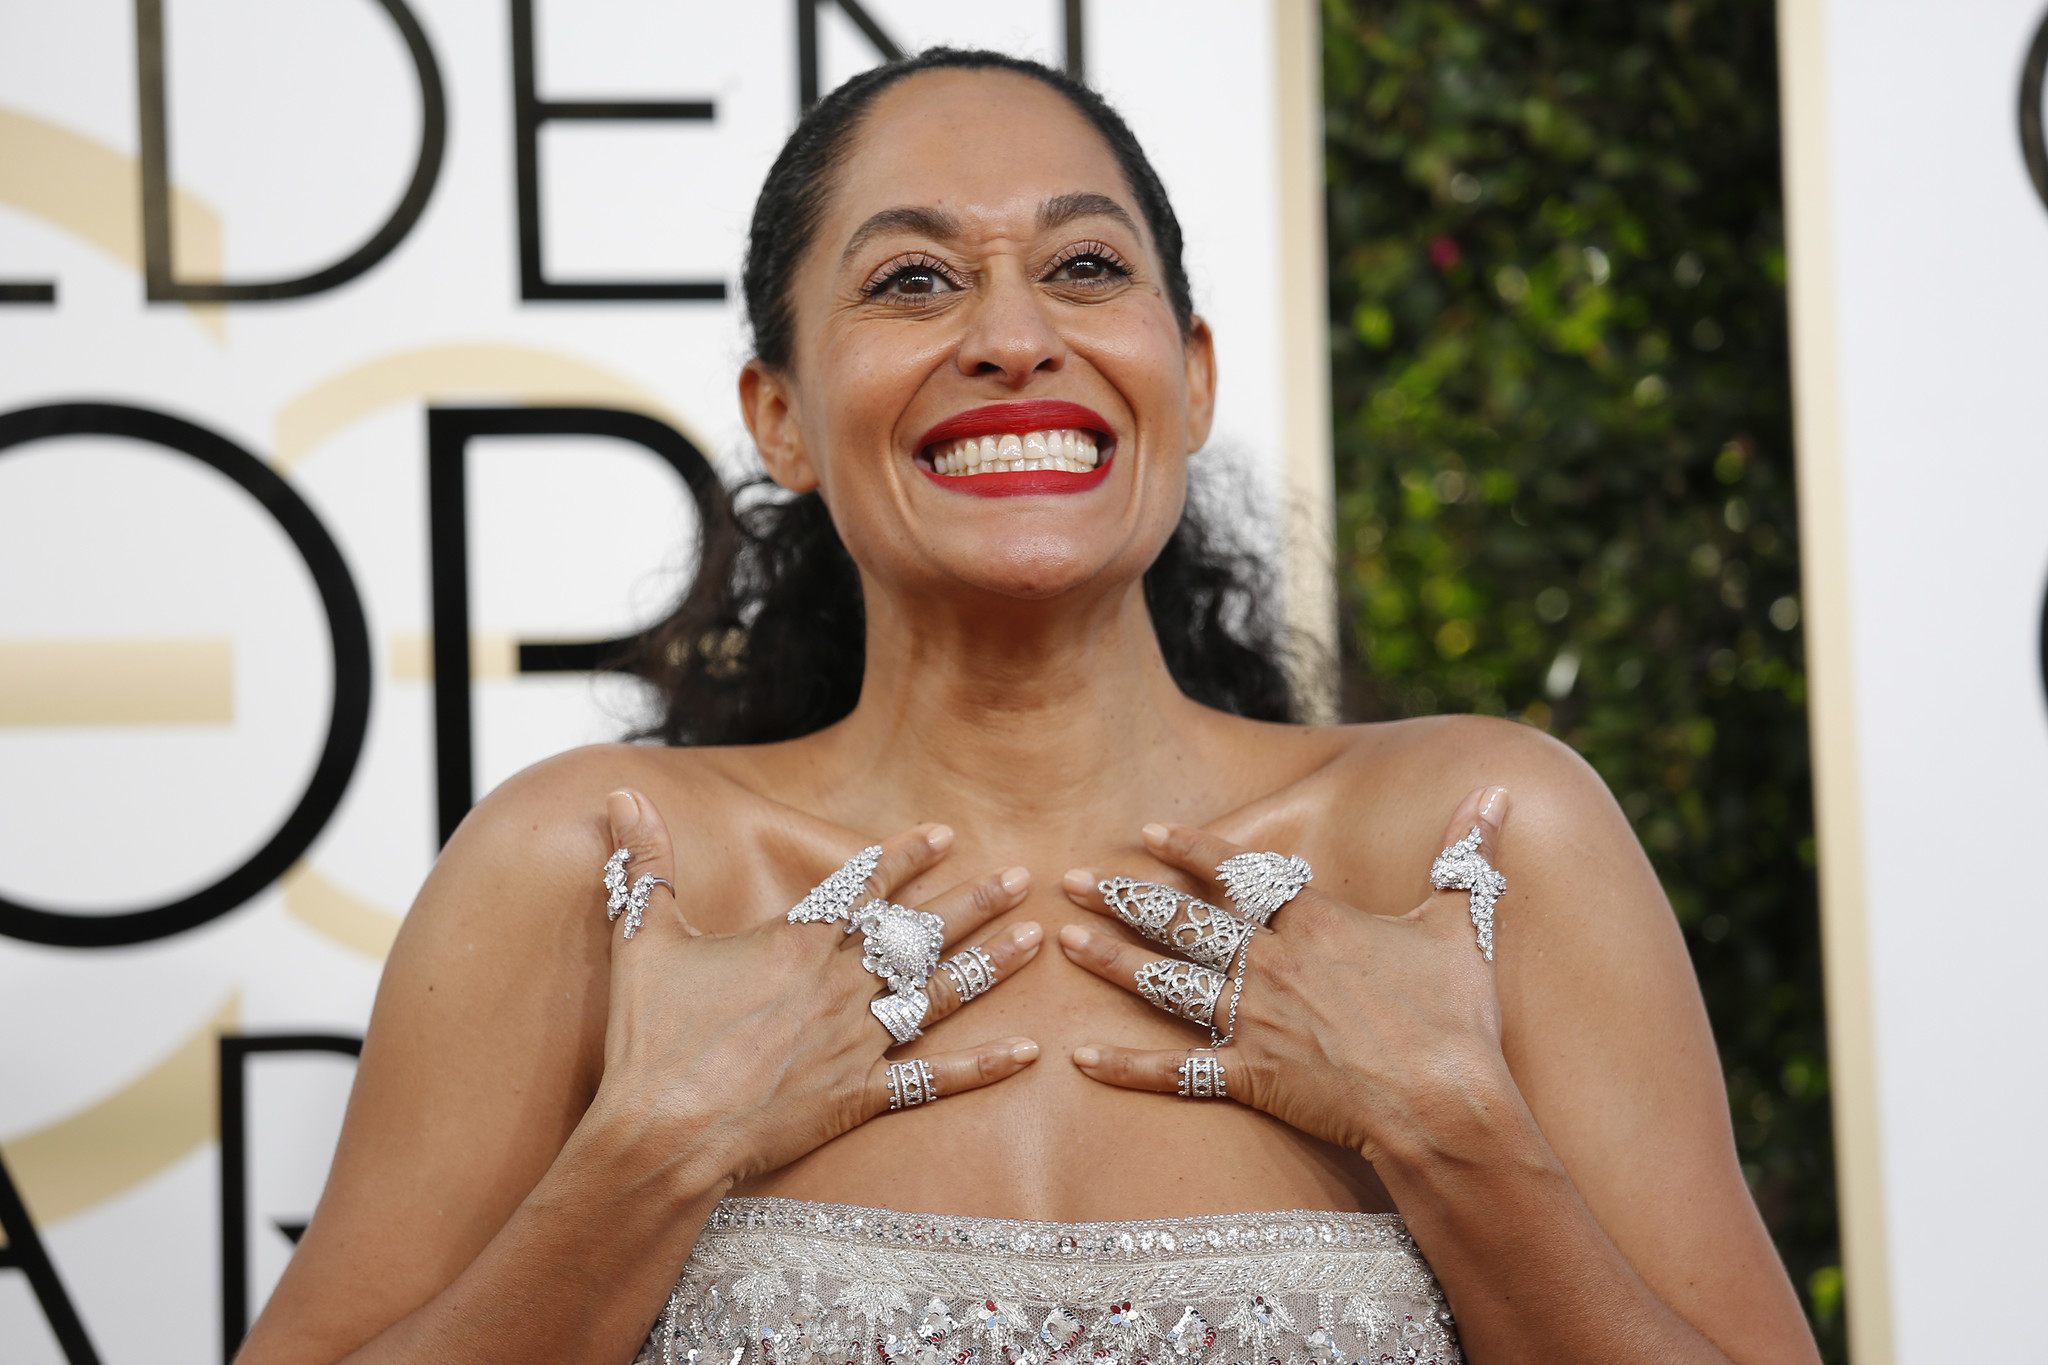 Tracee Ellis Ross arriving at the 74th Annual Golden Globe Awards show at the Beverly Hilton Hotel on January 8, 2017. (Jay L. Clendenin / Los Angeles Times)